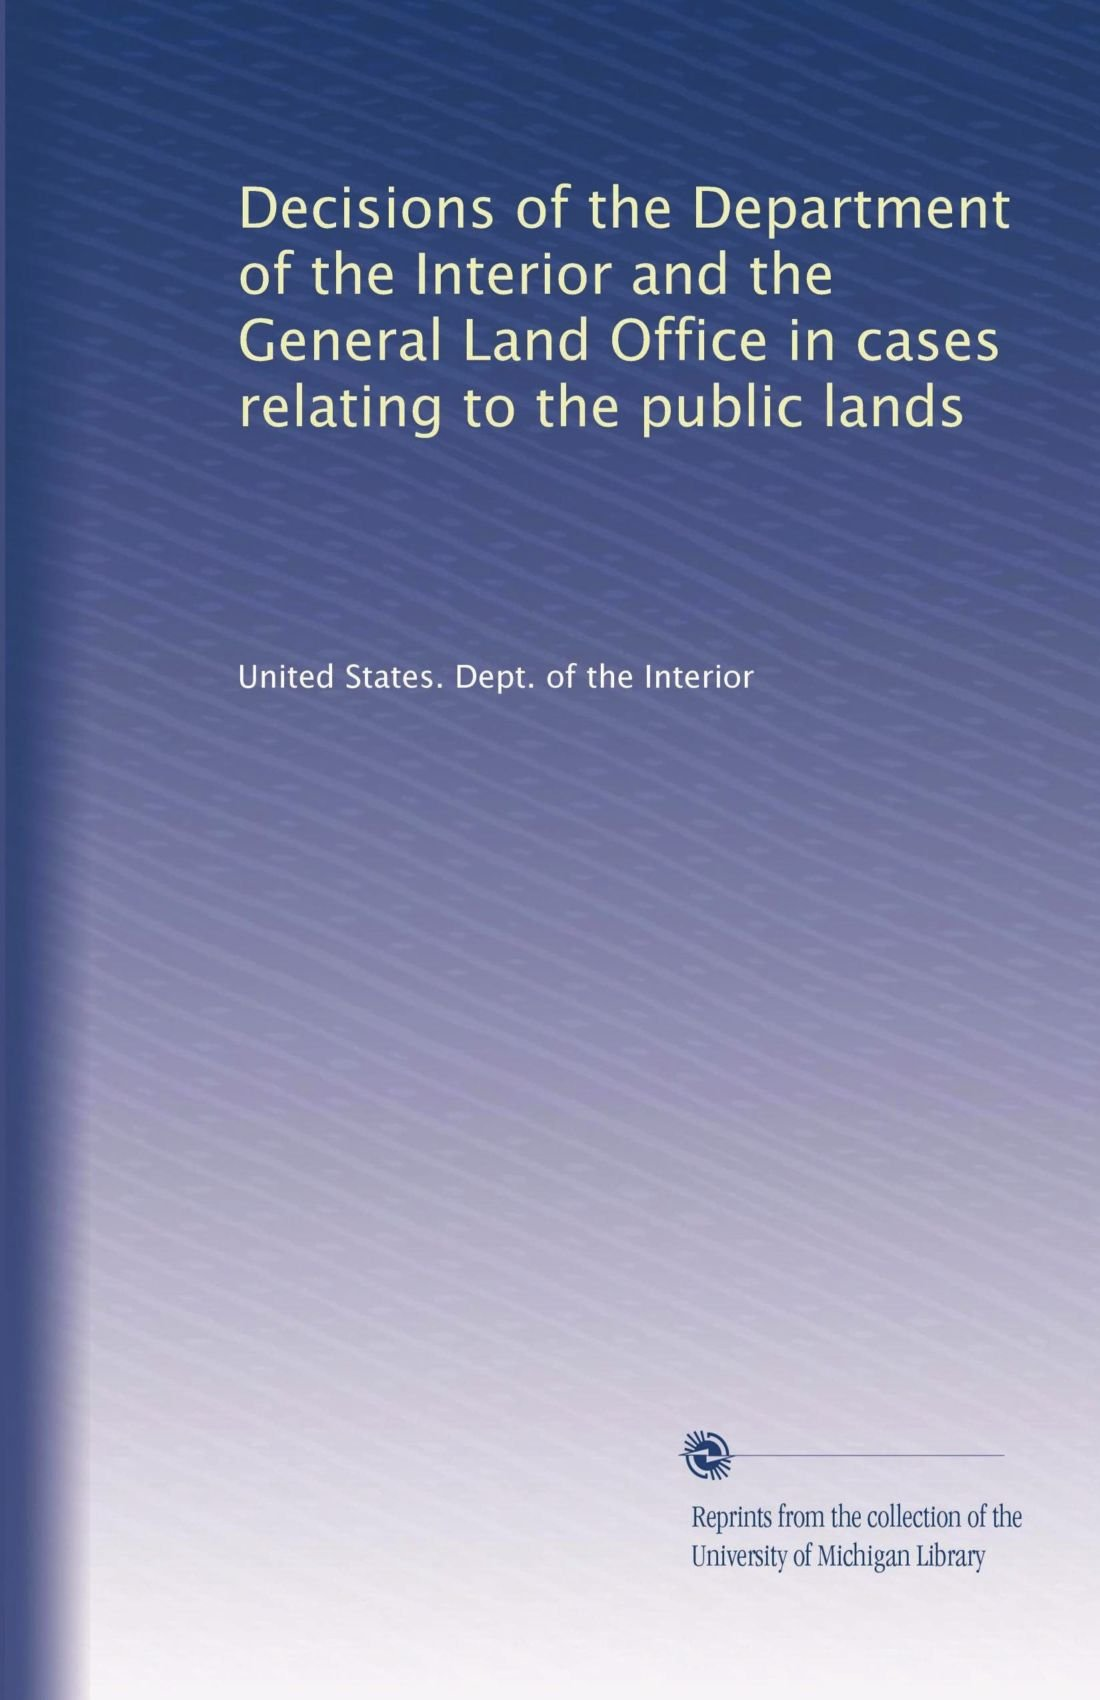 Download Decisions of the Department of the Interior and the General Land Office in cases relating to the public lands (Volume 36) pdf epub